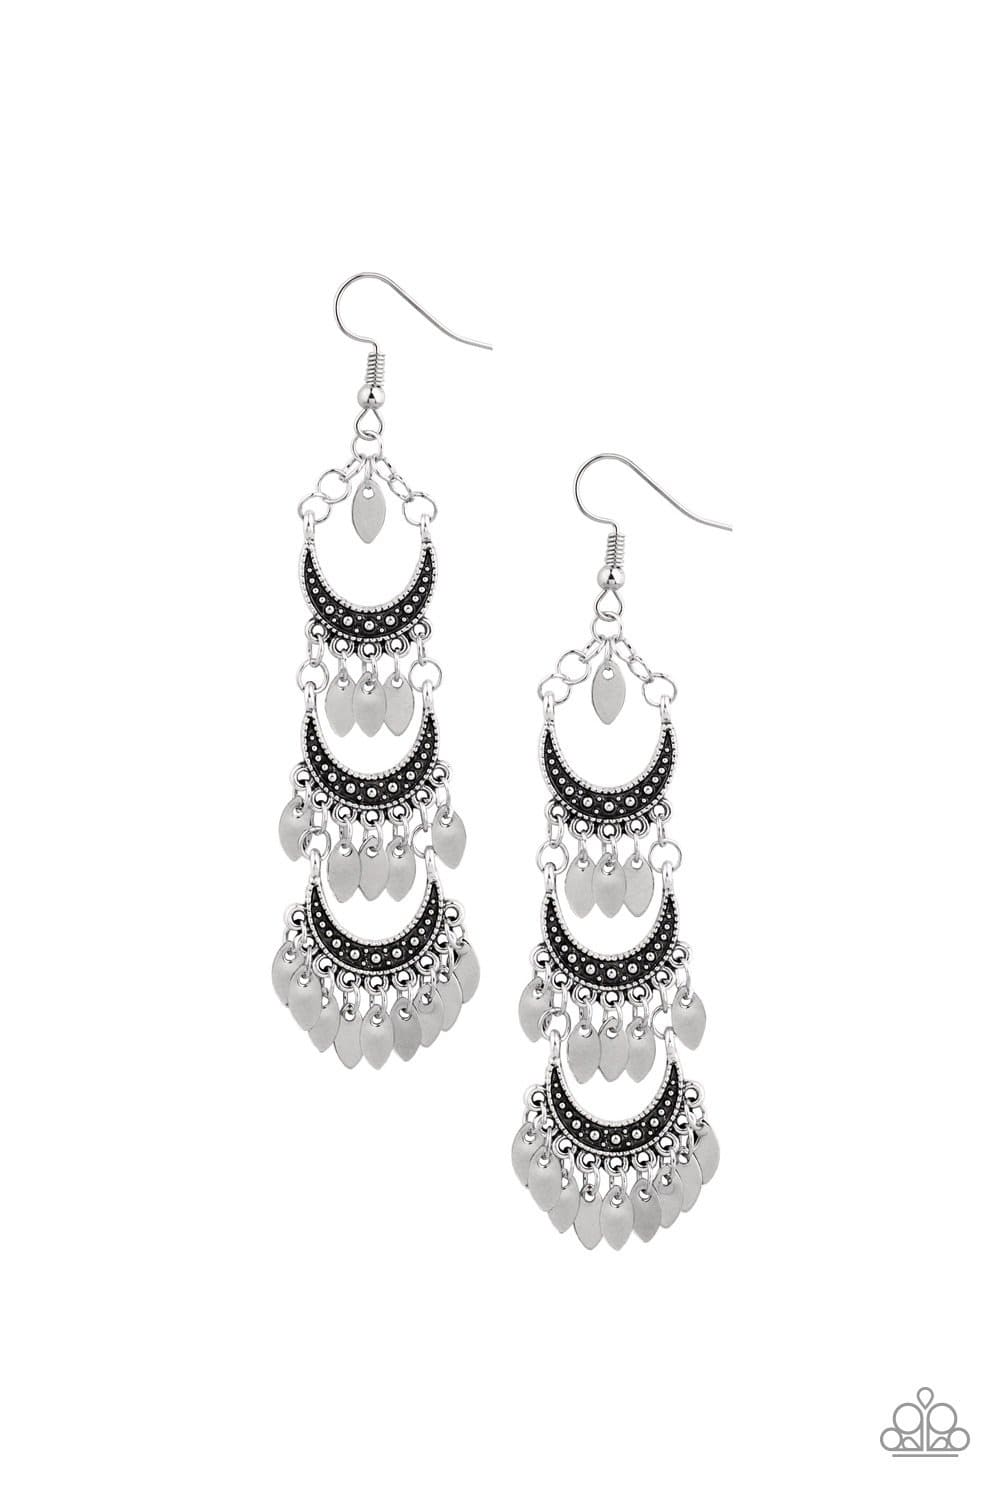 Take Your CHIME - Silver: Paparazzi Accessories - Jewels N' Thingz Boutique